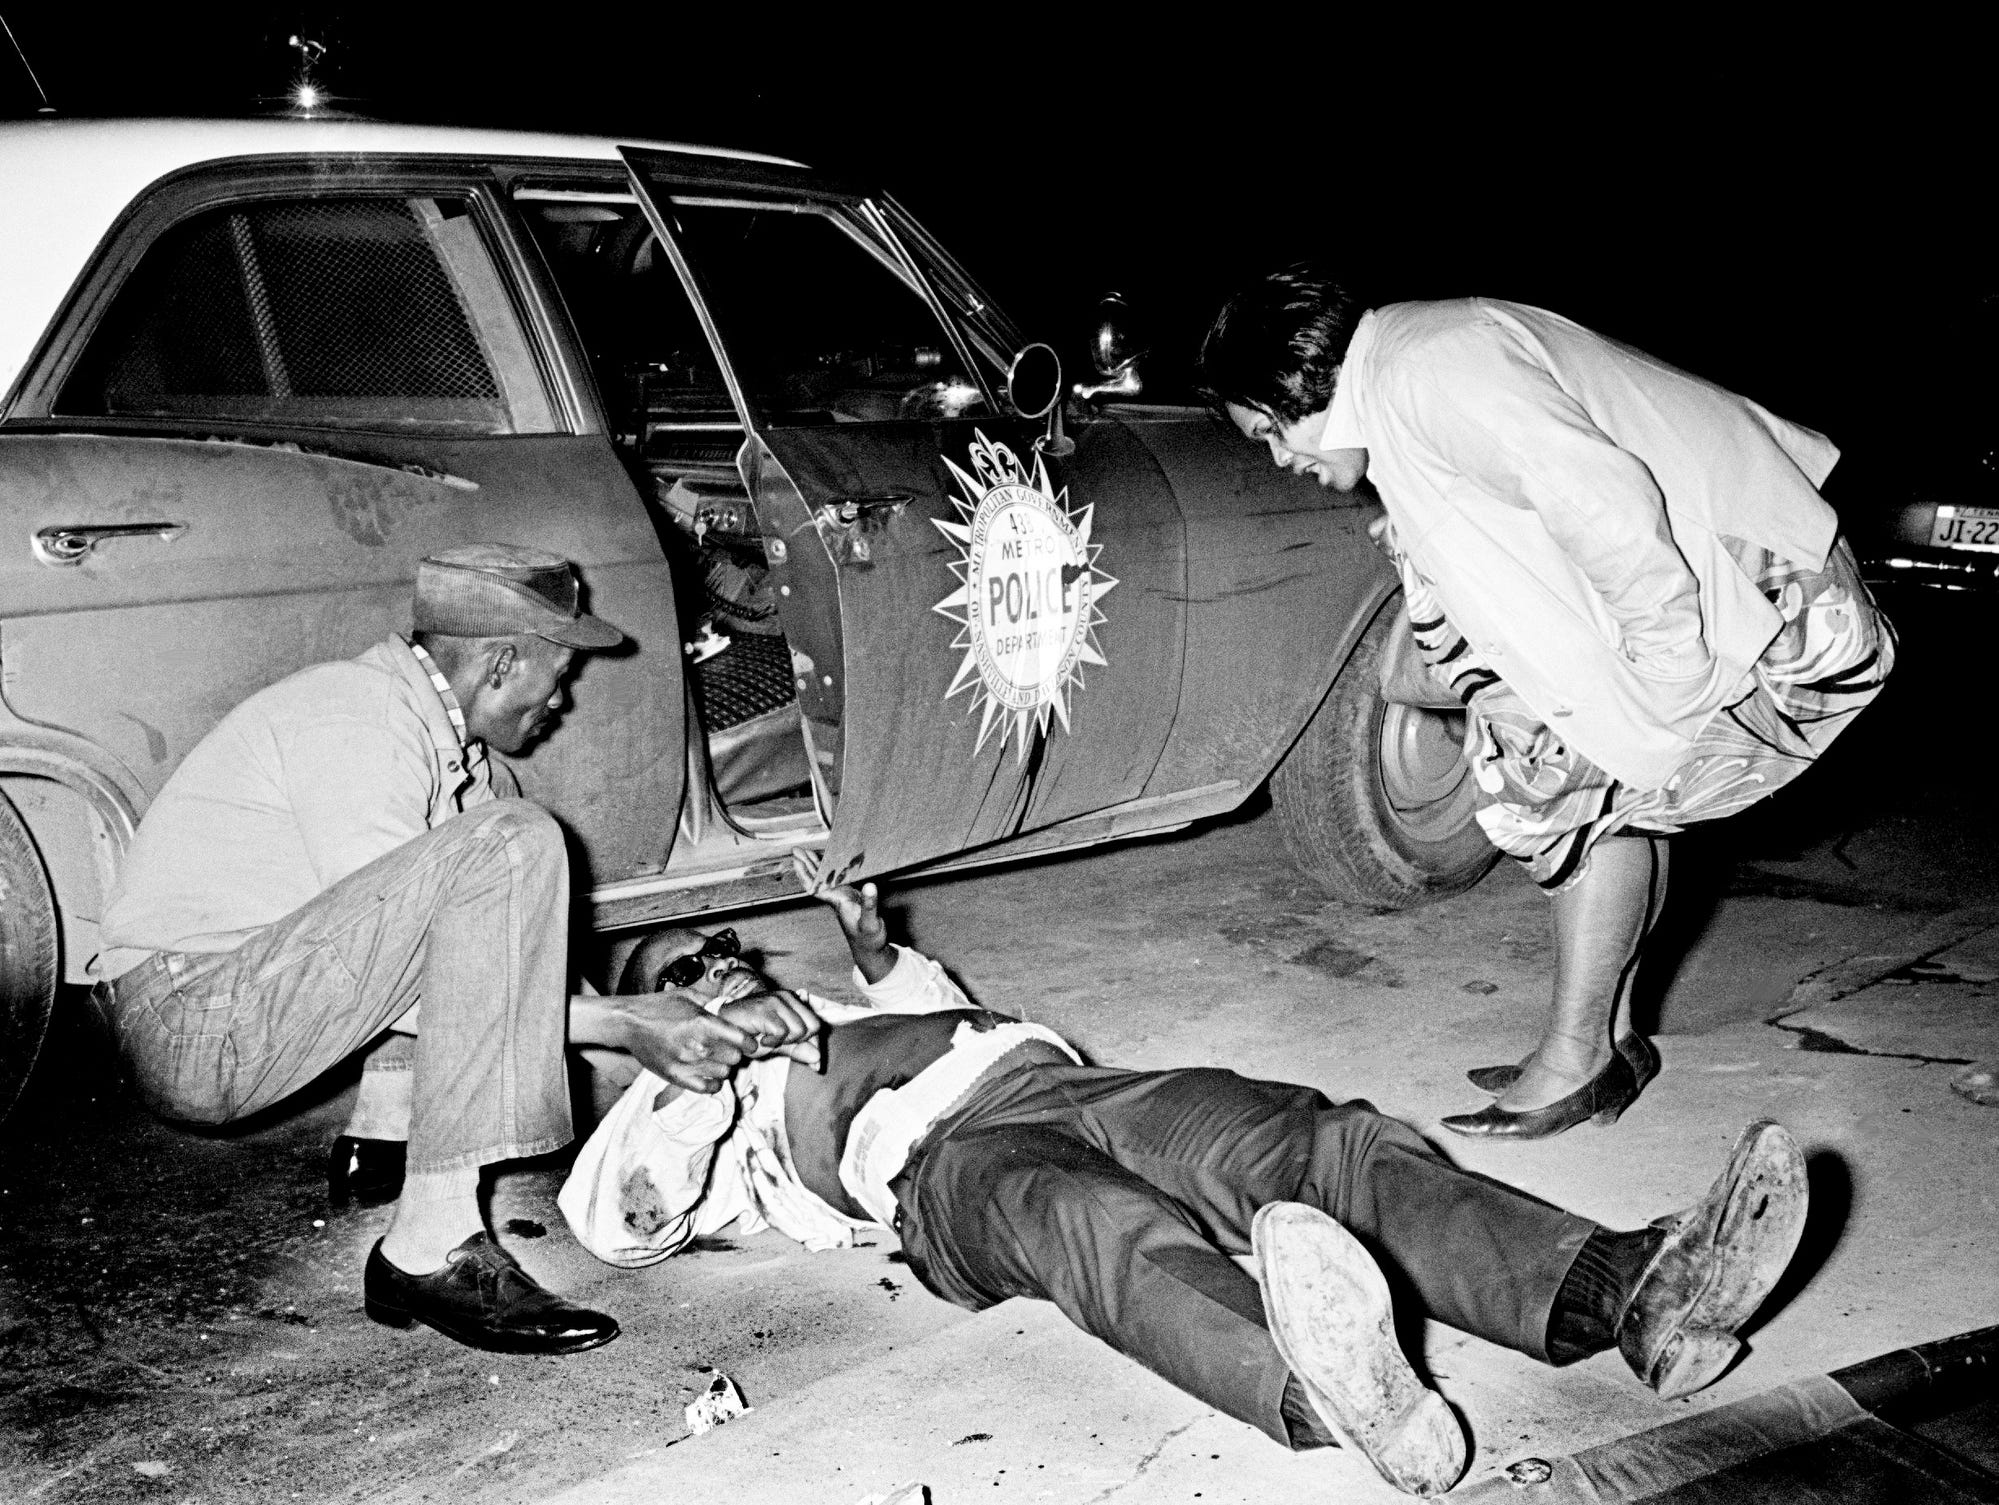 A couple of friends check on Elvis Fleming, center, after he was wounded during a Metro police gunbattle April 4, 1968. Fleming and 13-year-old Anthony Webster were hurt when police were summoned to 22nd Avenue and Osage Street to check on a complaint that an armed person was threatening residents during rioting after the assassination of the Rev. Martin Luther King Jr.